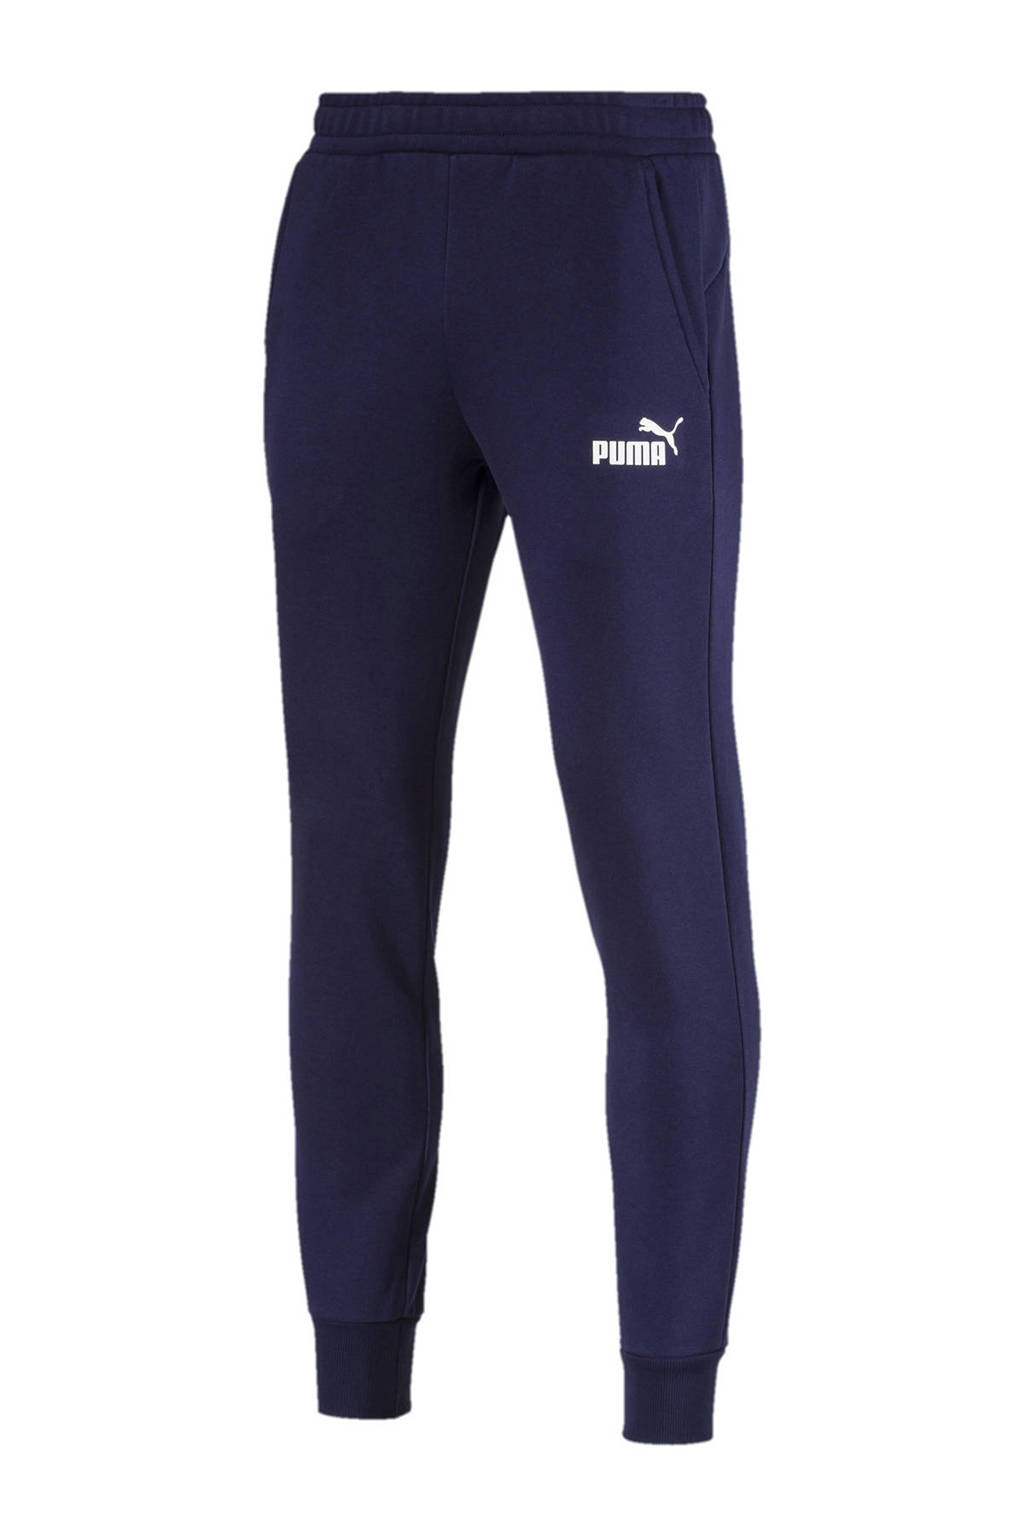 Puma 7/8 joggingbroek, Blauw/wit